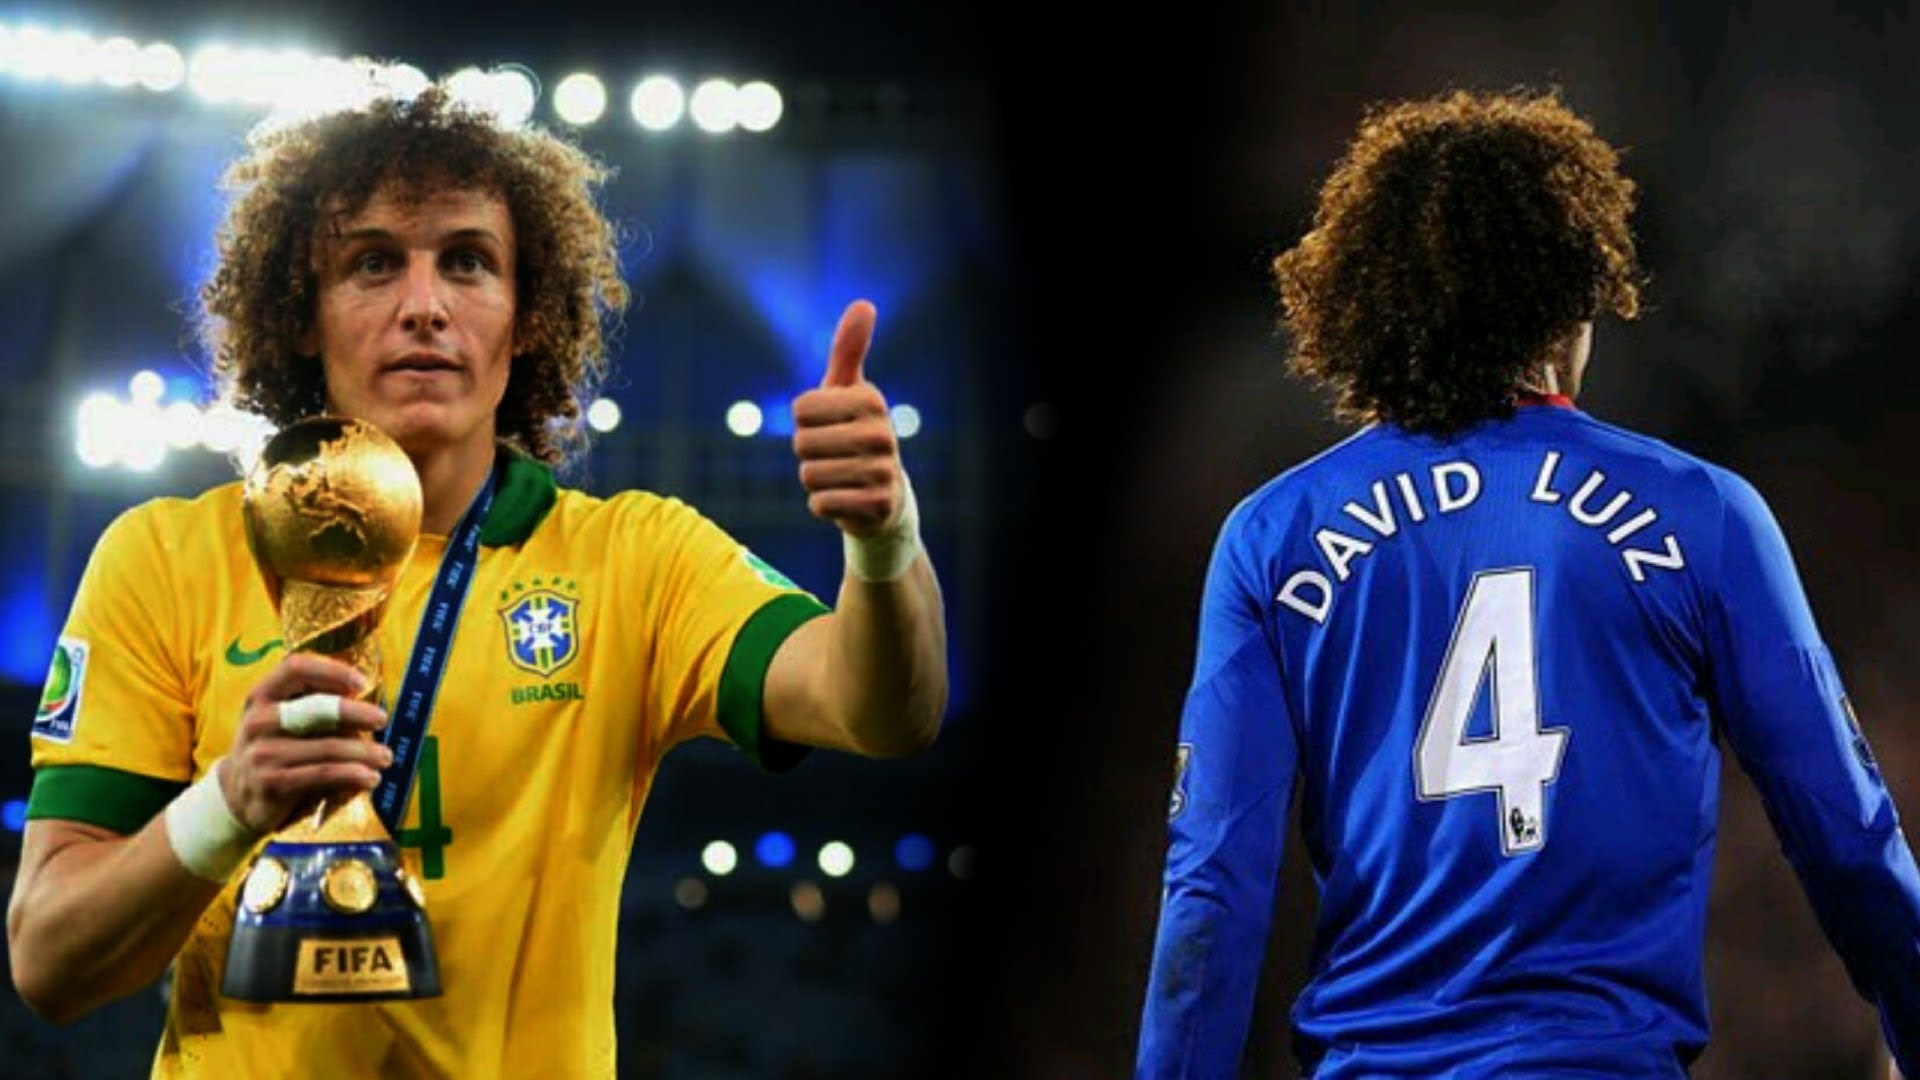 David Luiz Wallpaper